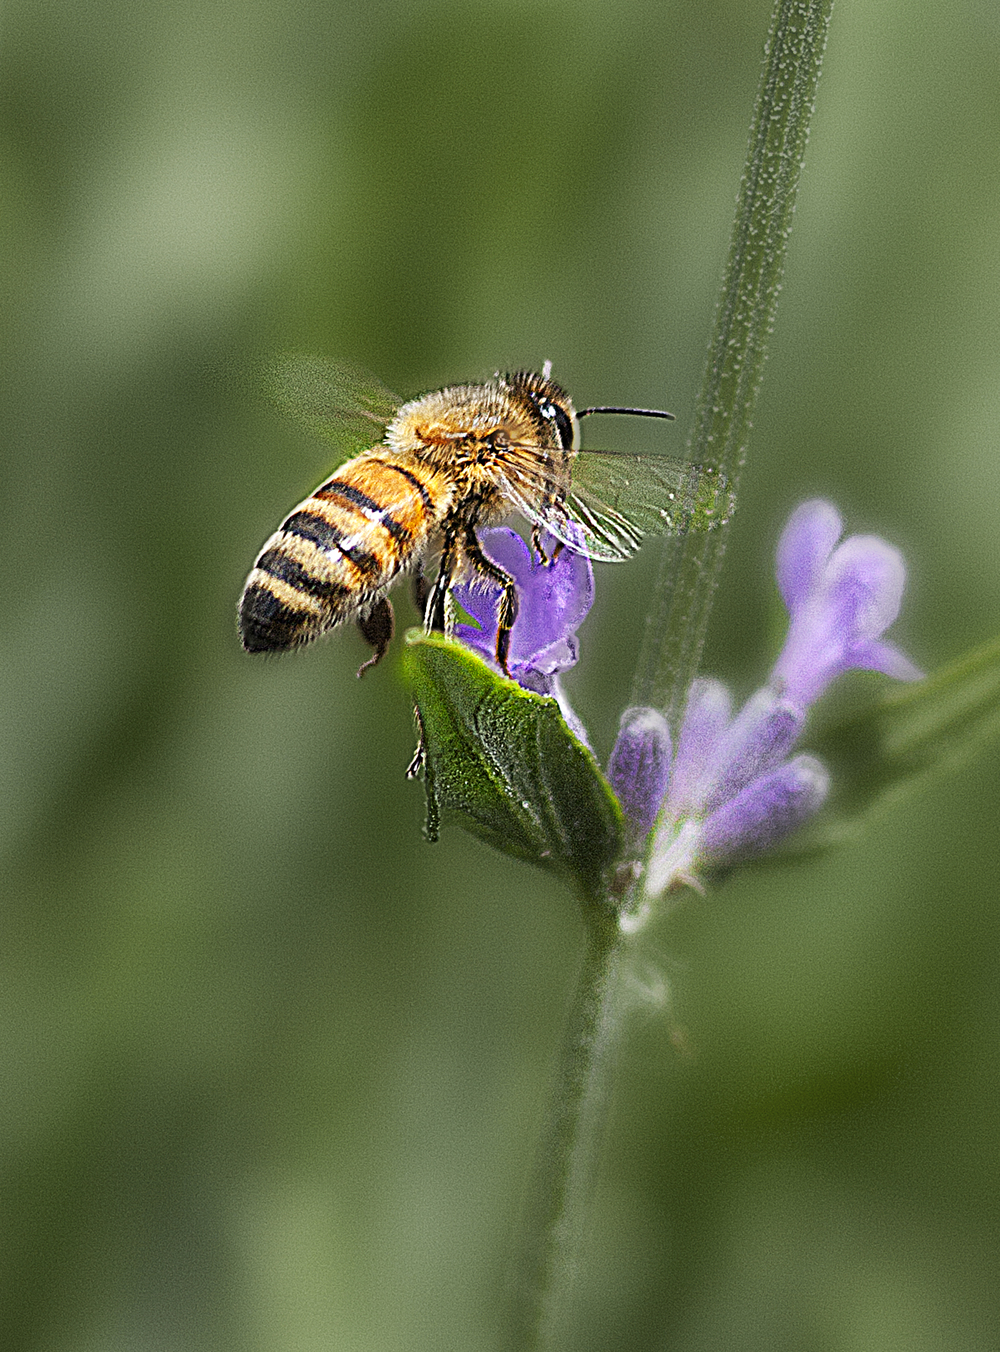 Coming soon to a garden near you Read about The honey bee Comments